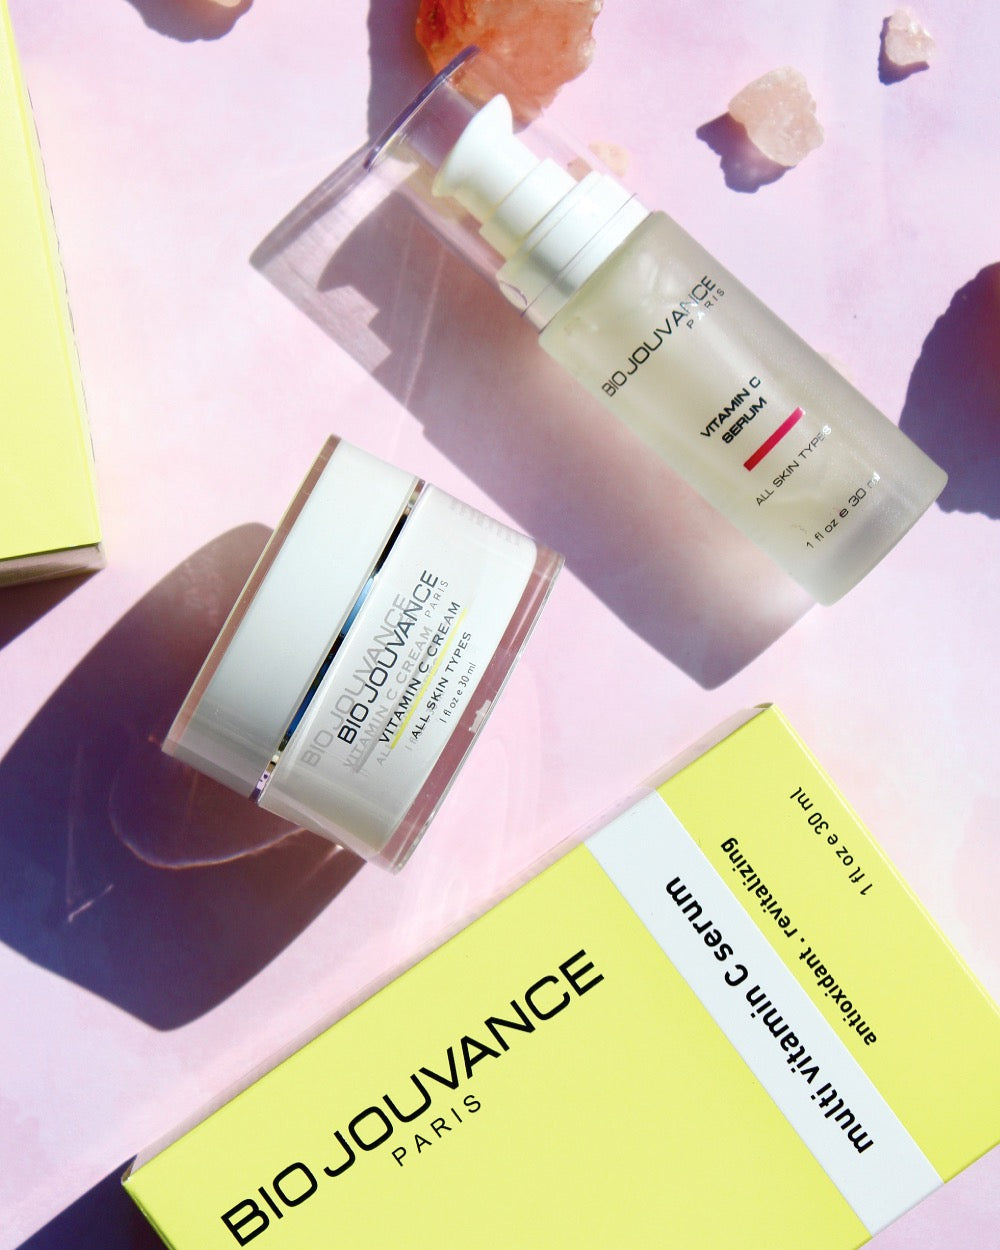 Bio Jouvance Paris Vitamin C Serum and Vitamin C Cream